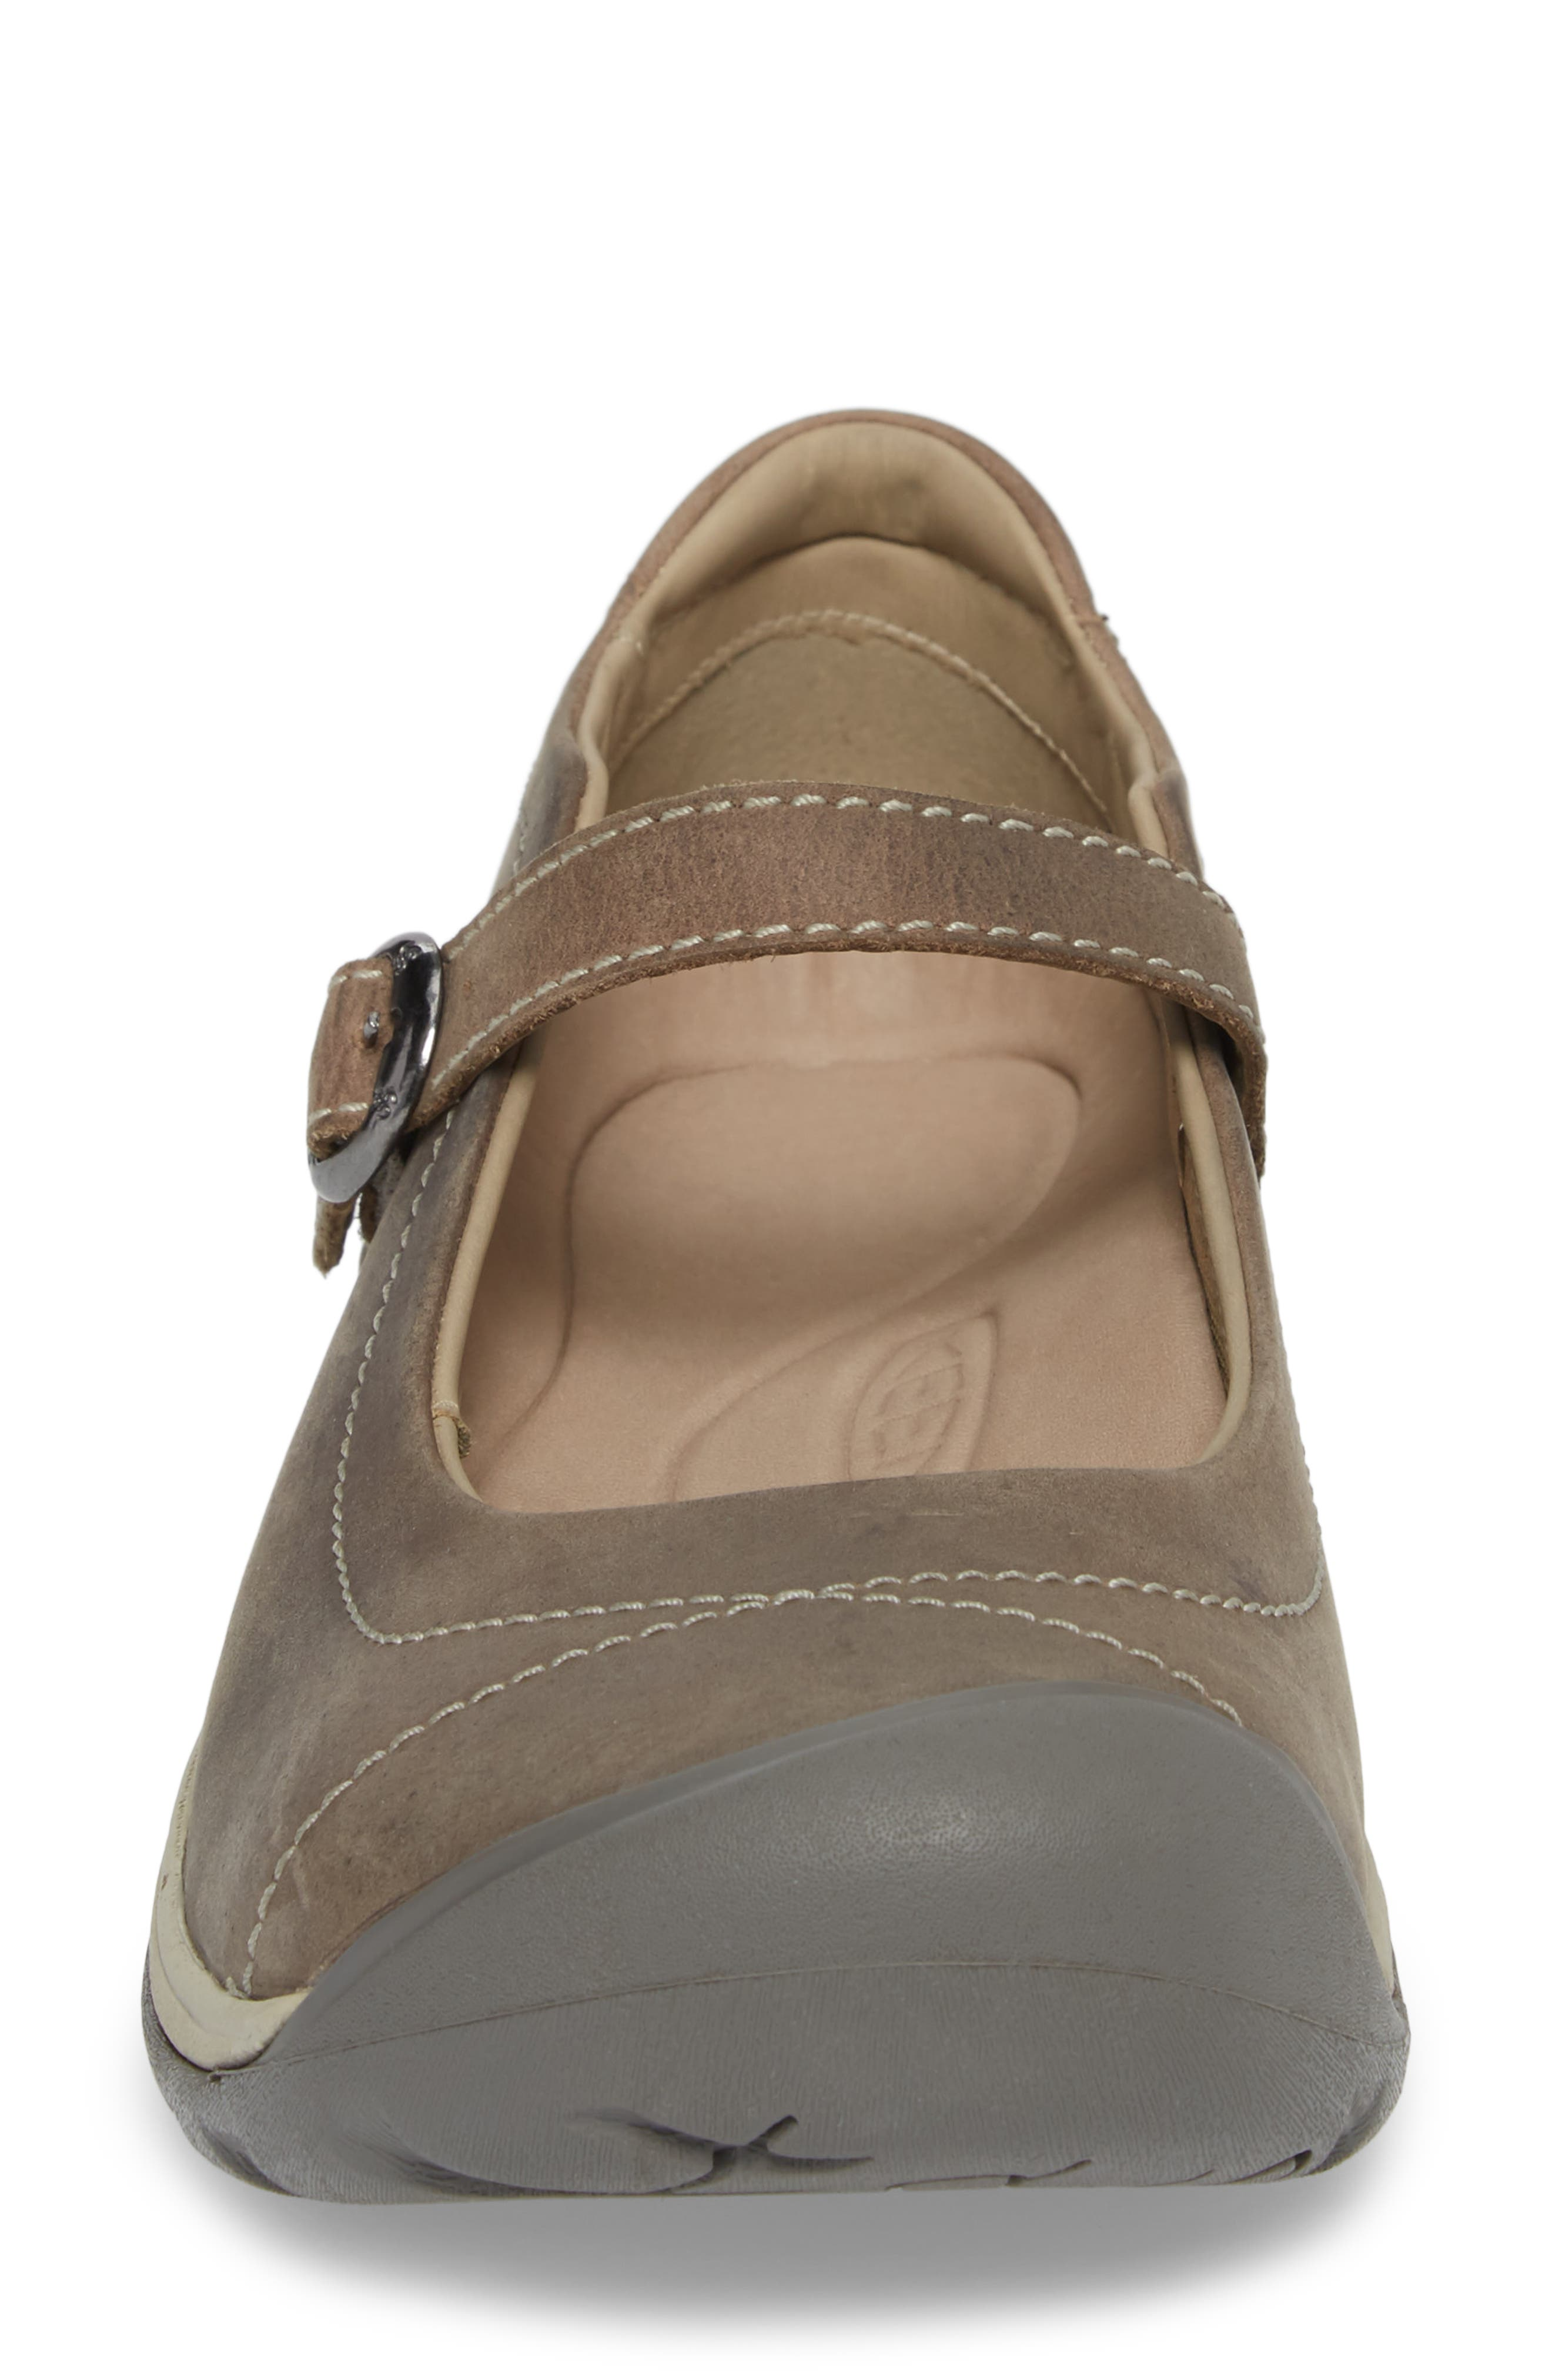 KEEN, Presidio II Mary Jane Flat, Alternate thumbnail 4, color, PALOMA/ SILVER BIRCH LEATHER